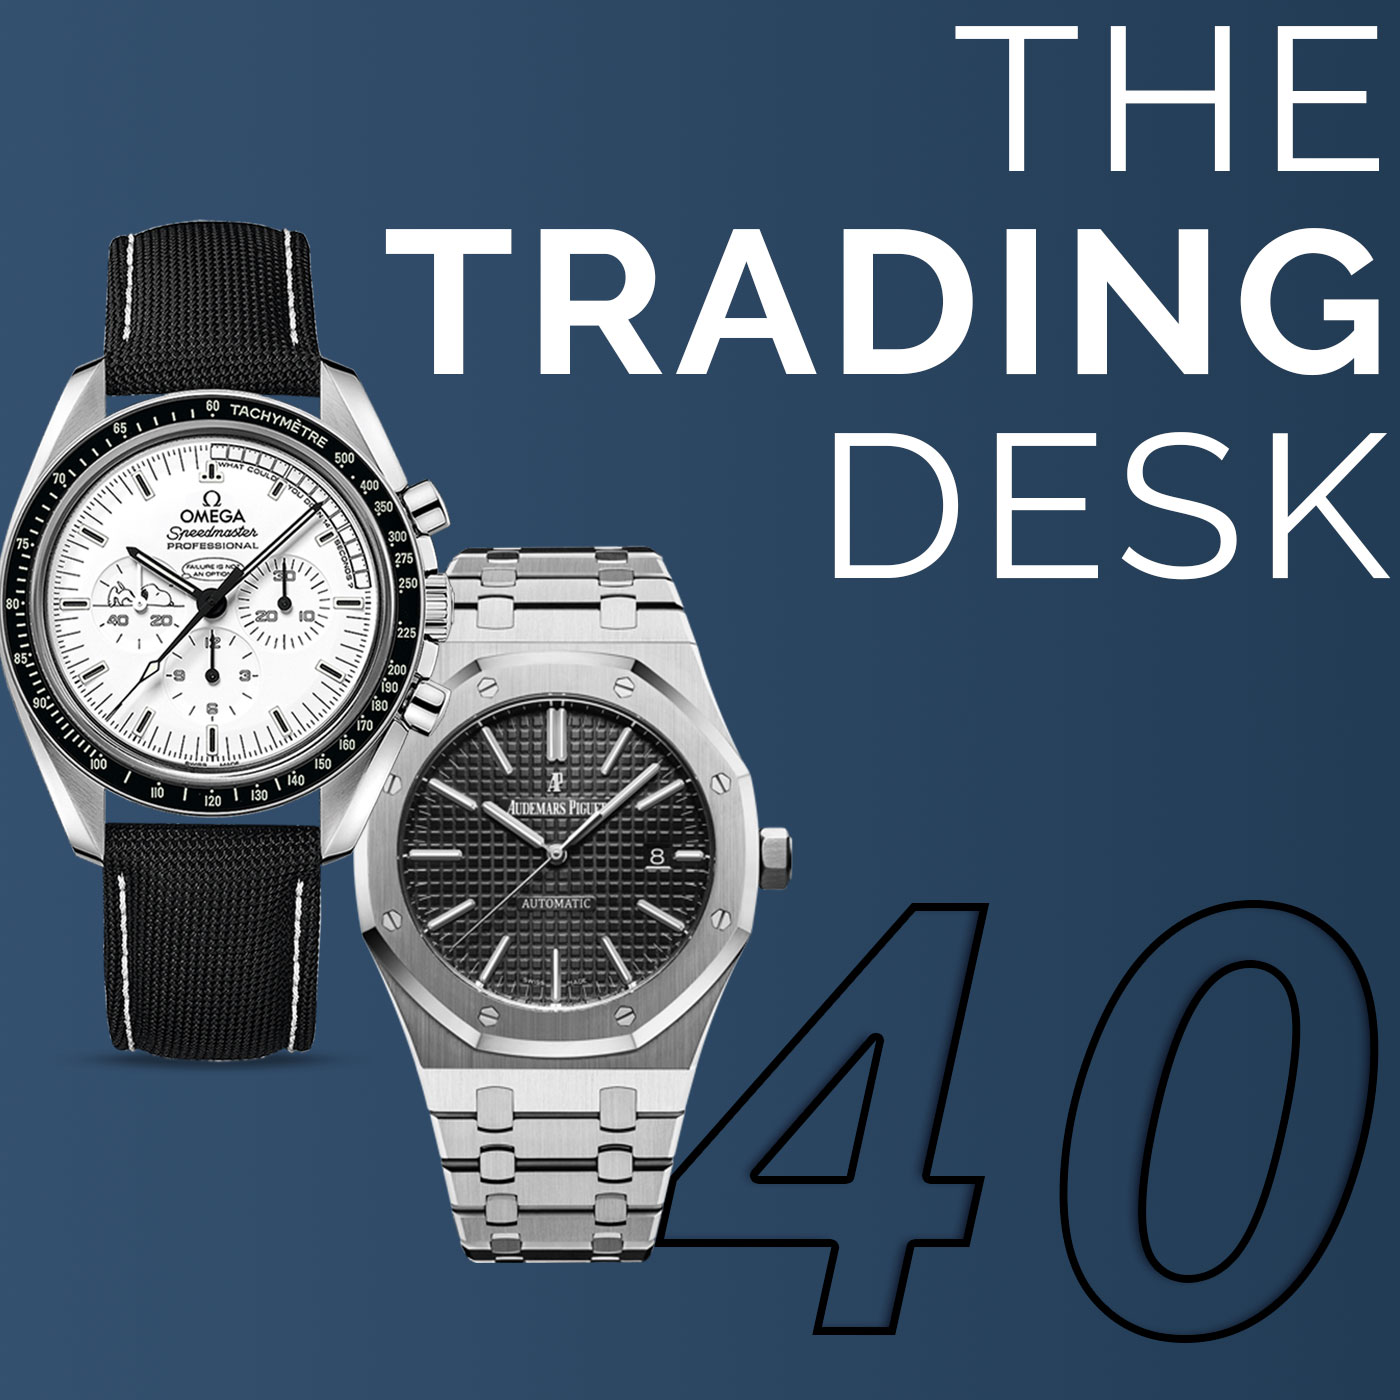 040: Hot Watches of the Week